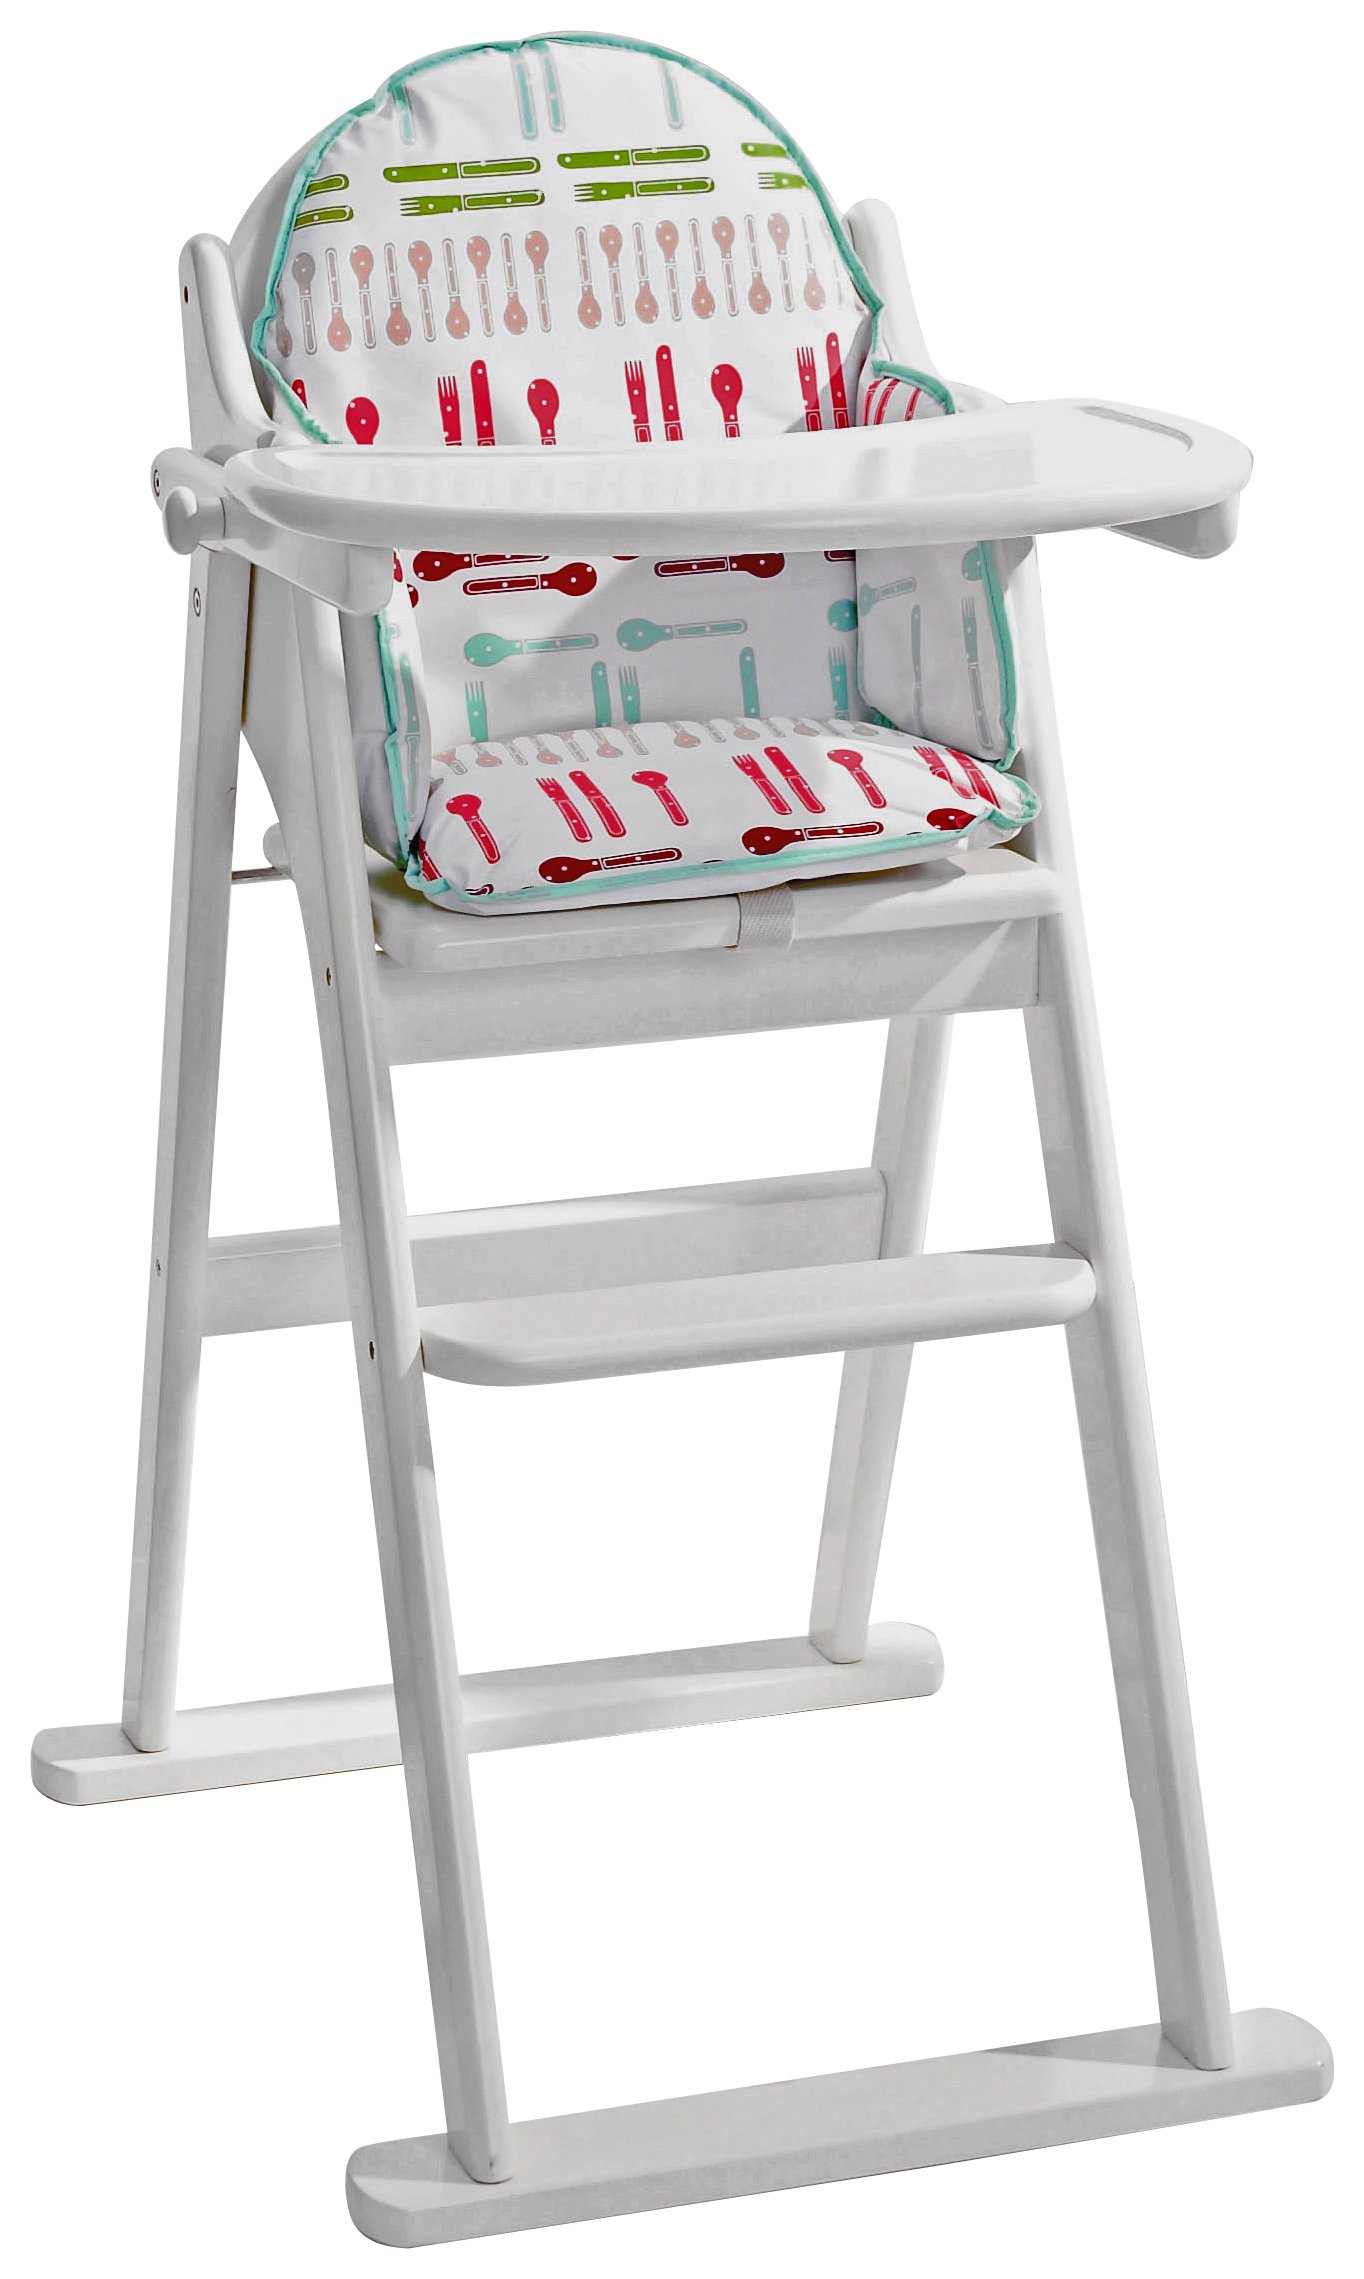 Image of East Coast - Dinner Time Baby - Highchair Insert